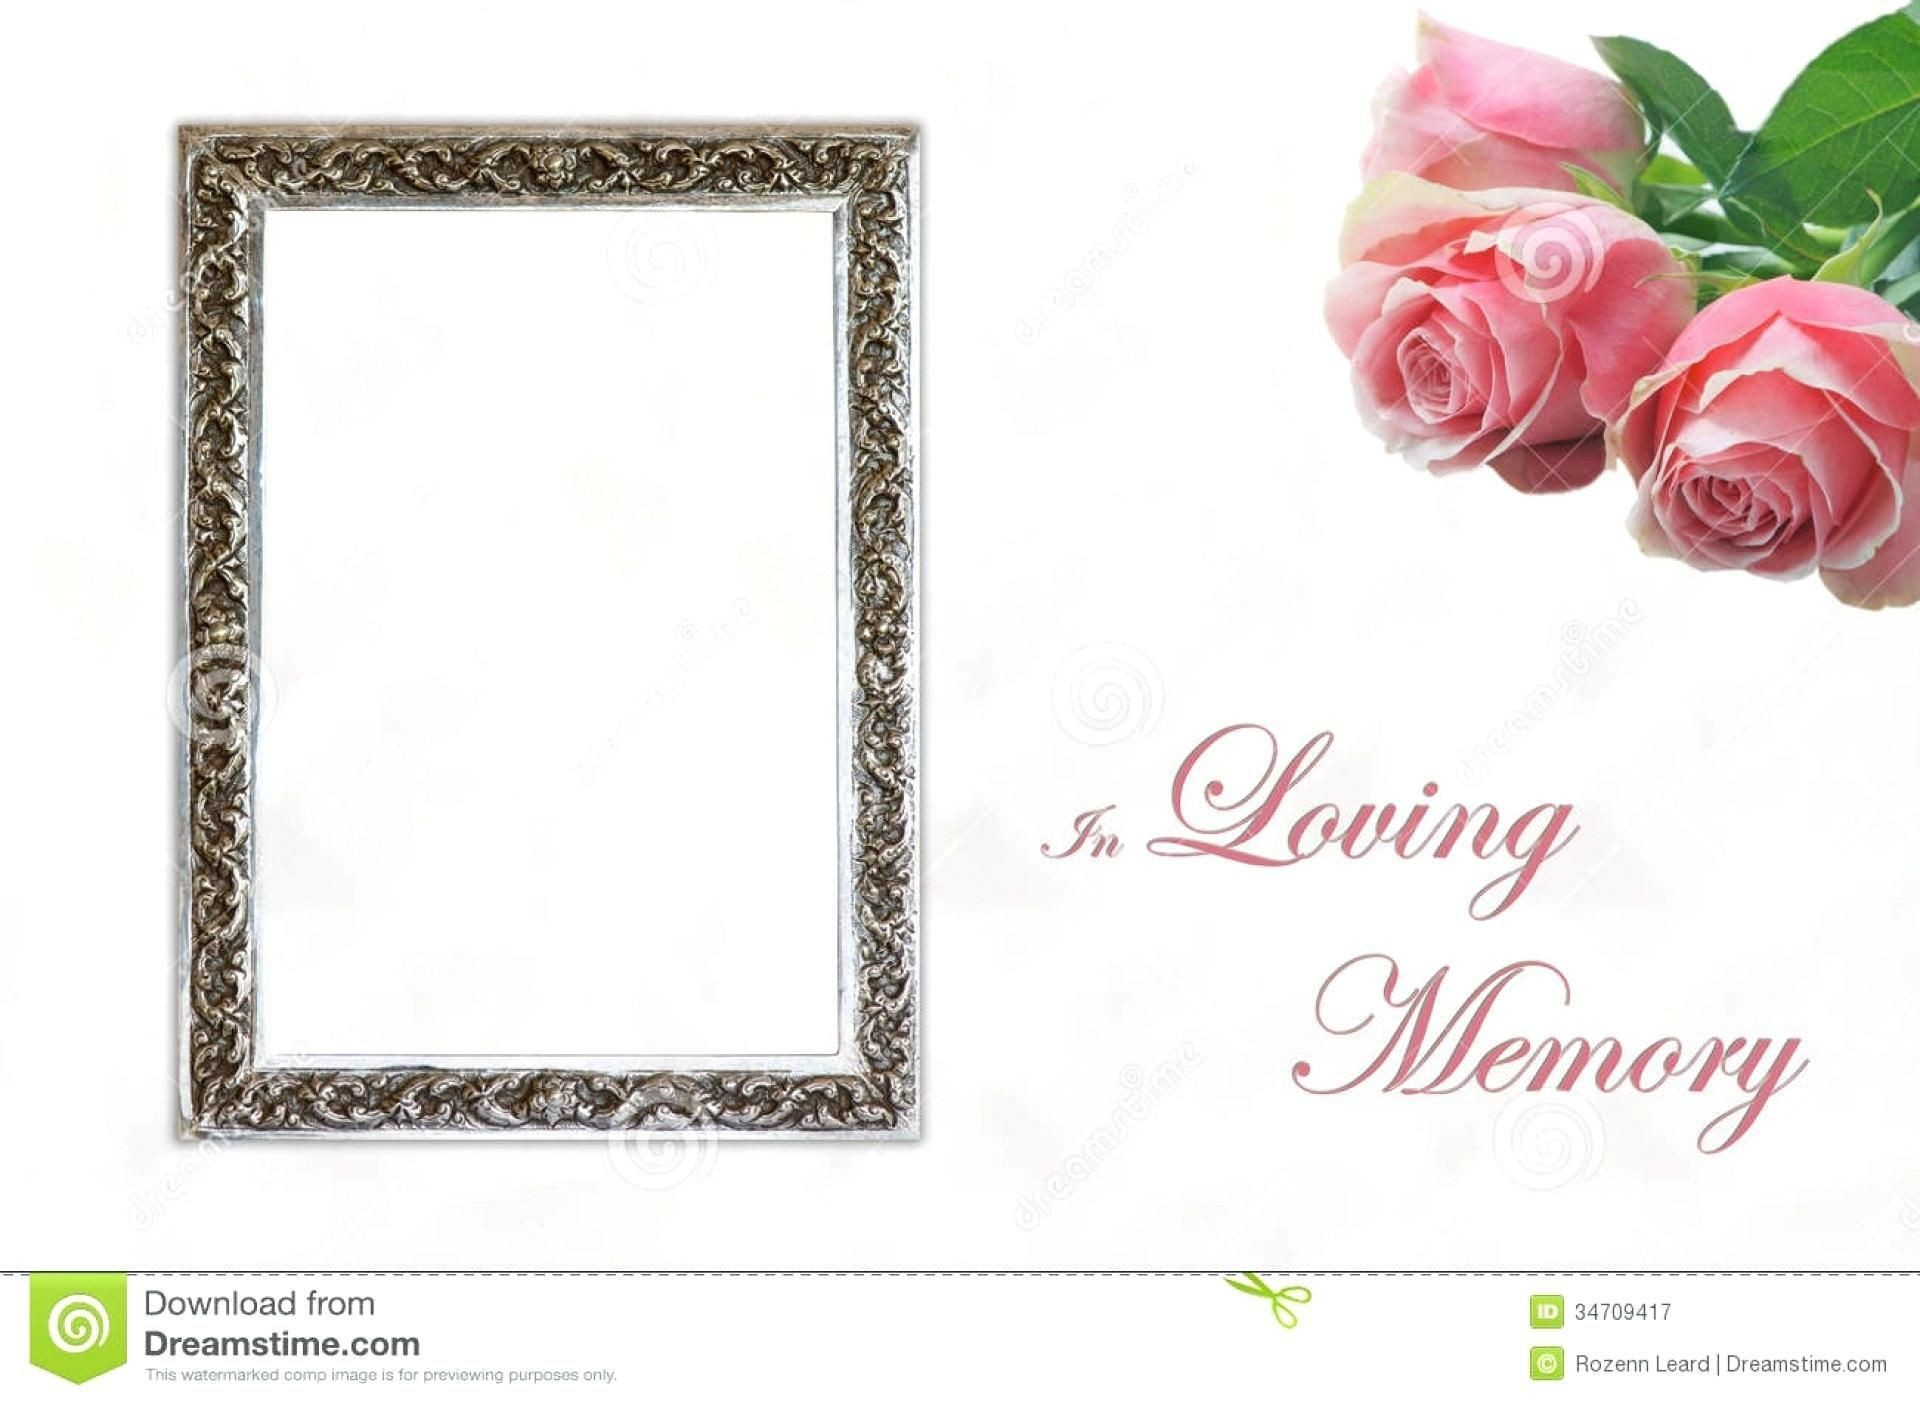 001 Singular In Loving Memory Decal Template Highest Quality  Templates1920